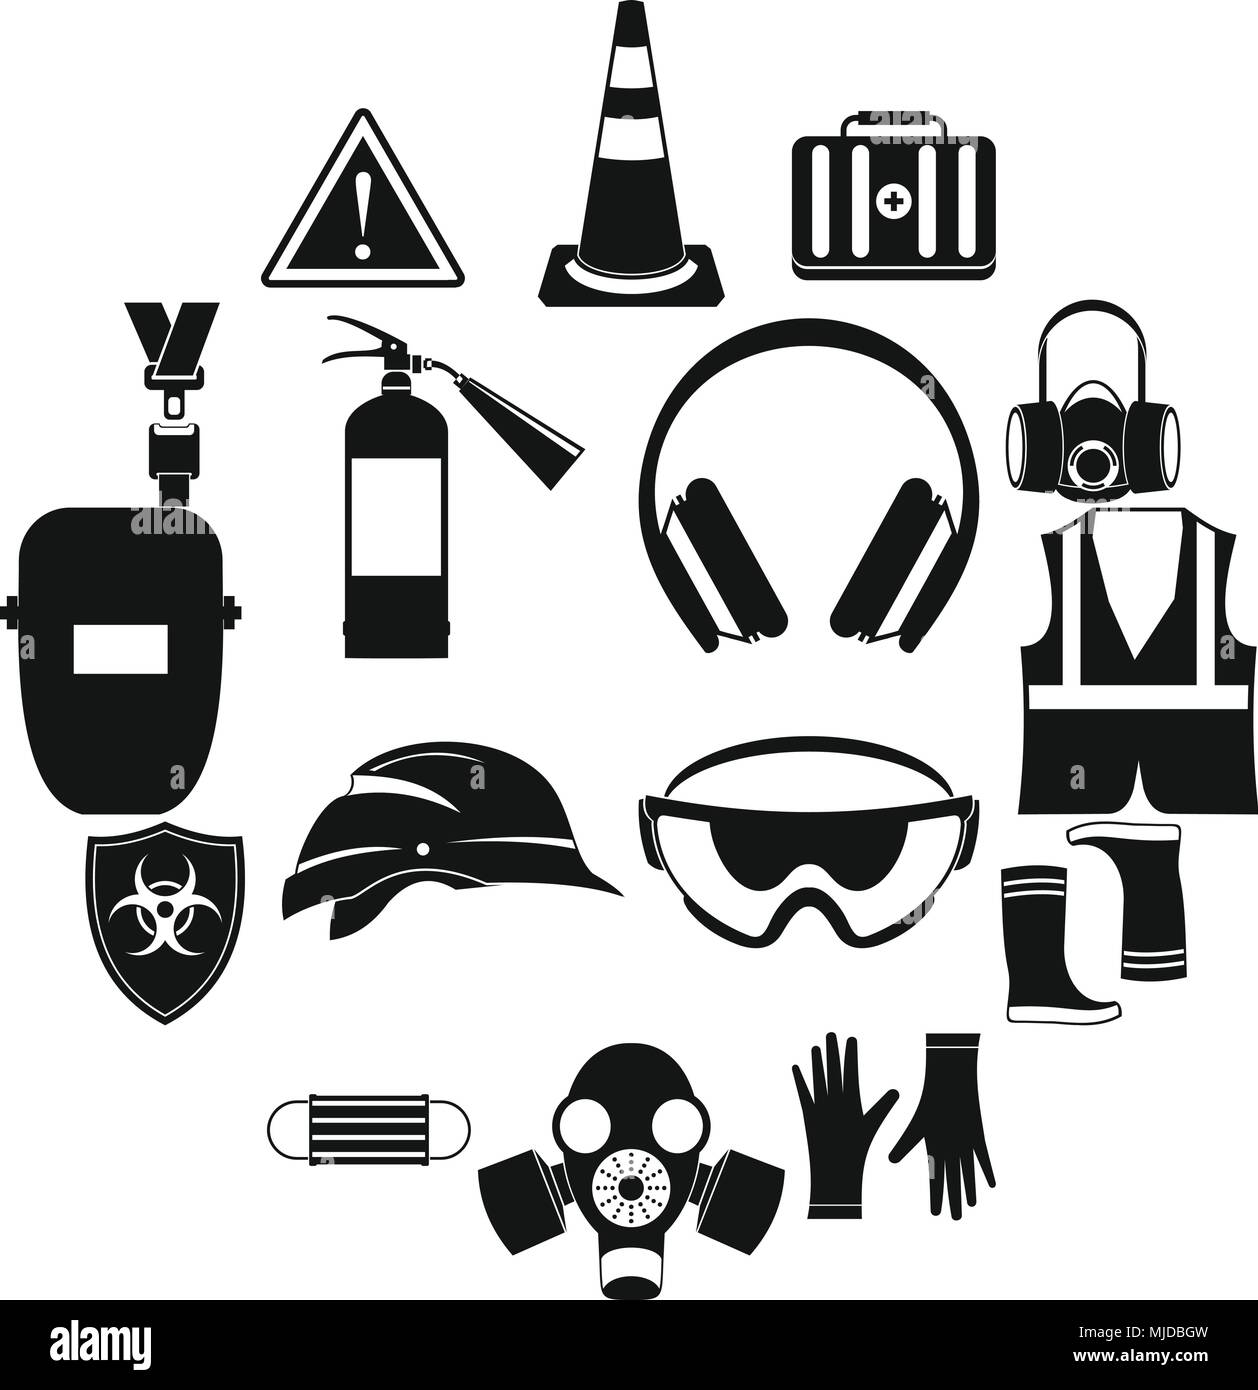 safety icons set simple style stock vector art illustration